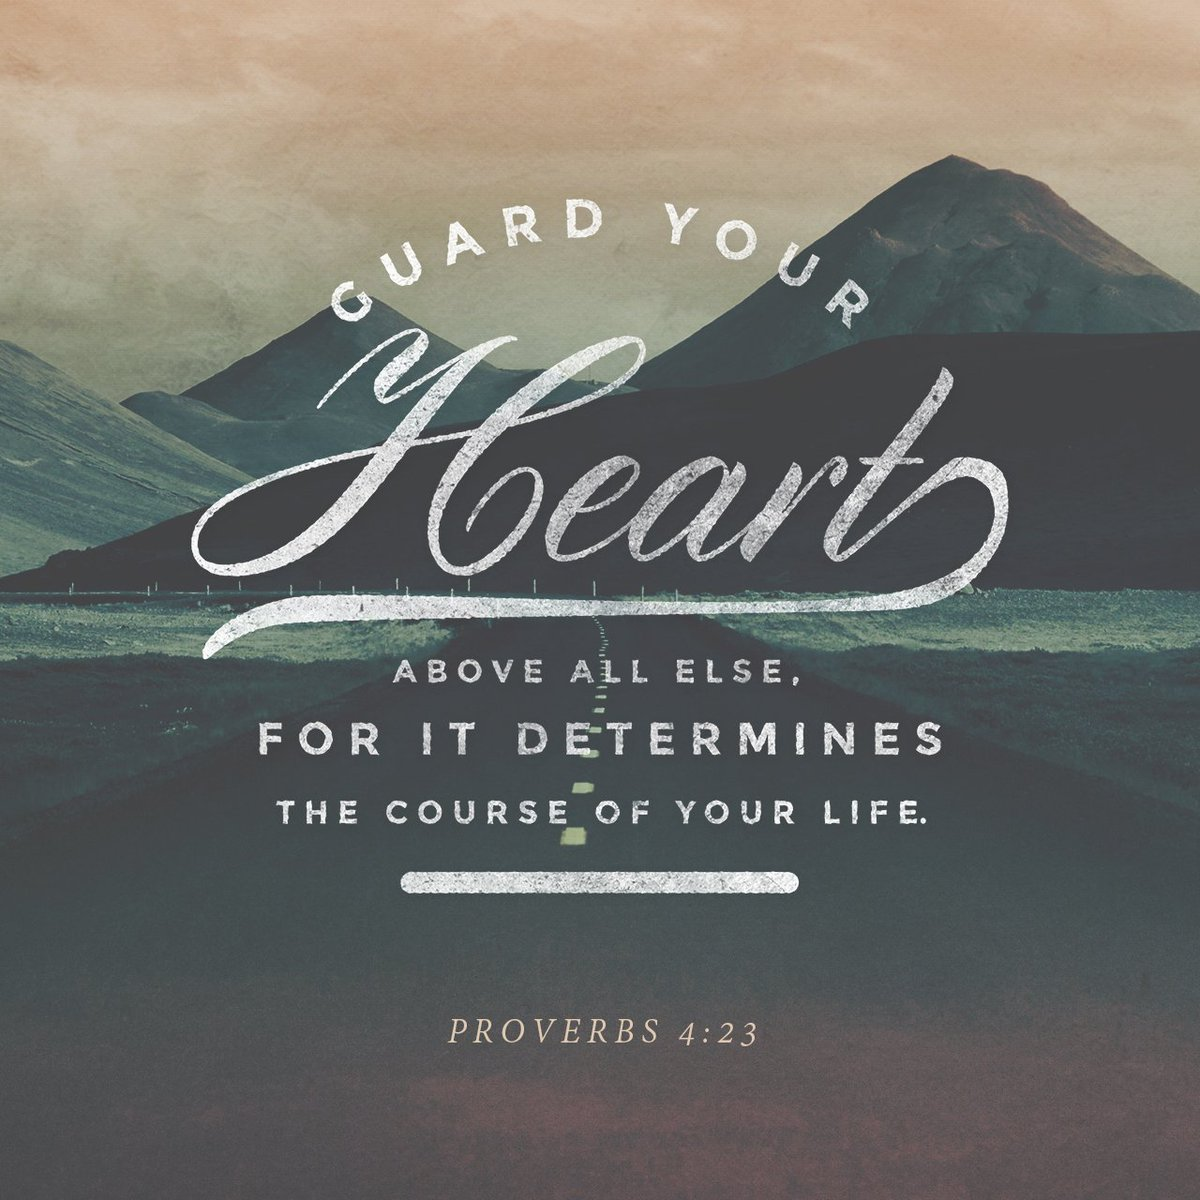 Guard your heart above all else, for it determines the course of your life. https://t.co/yCX6FUDTRj https://t.co/mLxgiEbNPF